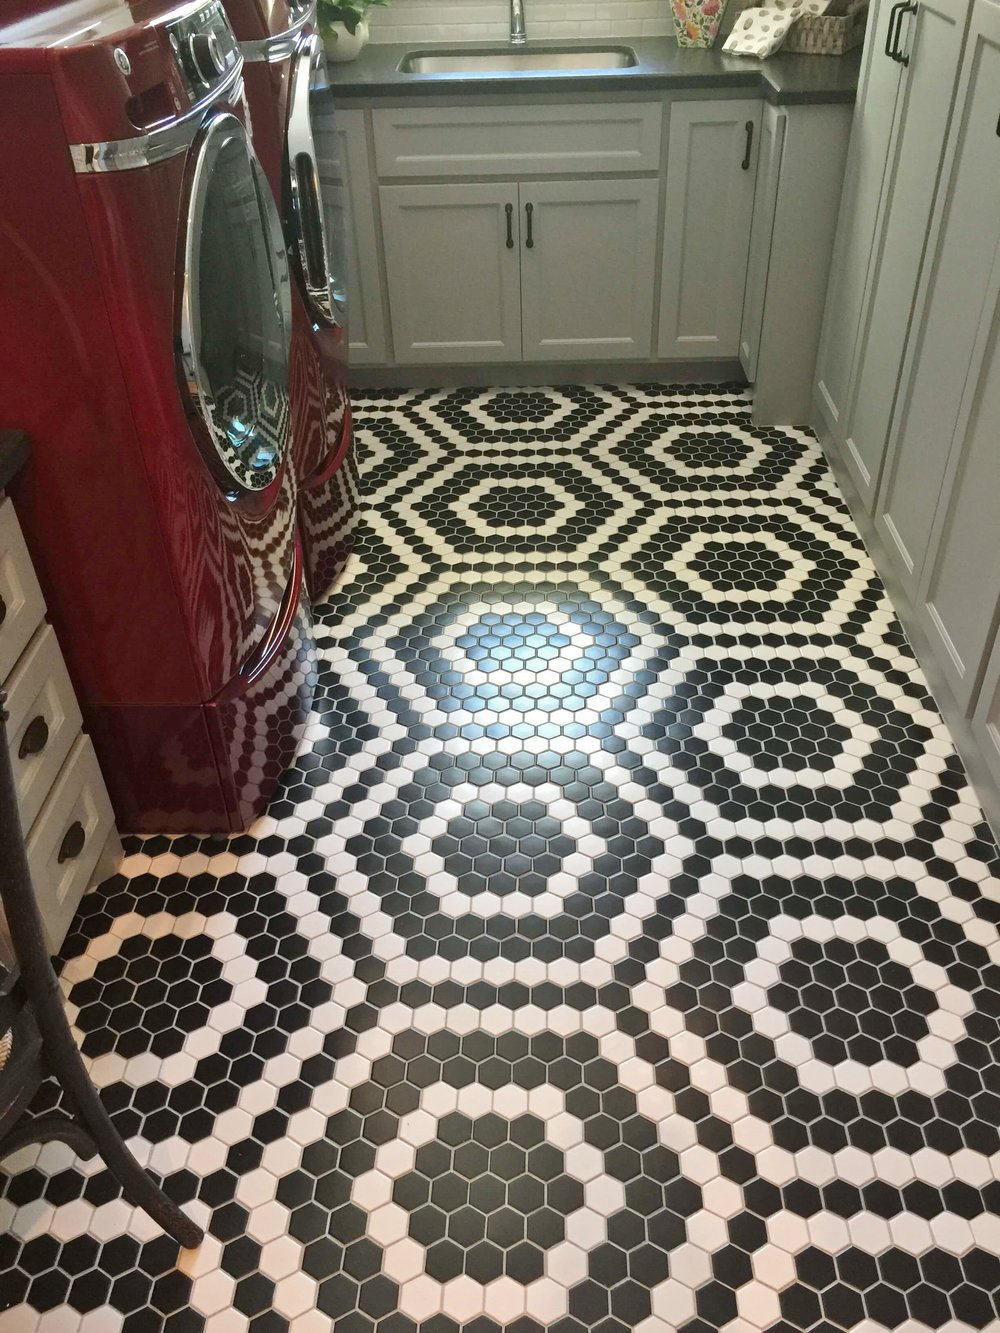 Southern Living Showcase Home - laundry room with red appliances and black and white tile floor #blackandwhite #tilefloor #blackandwhitefloor